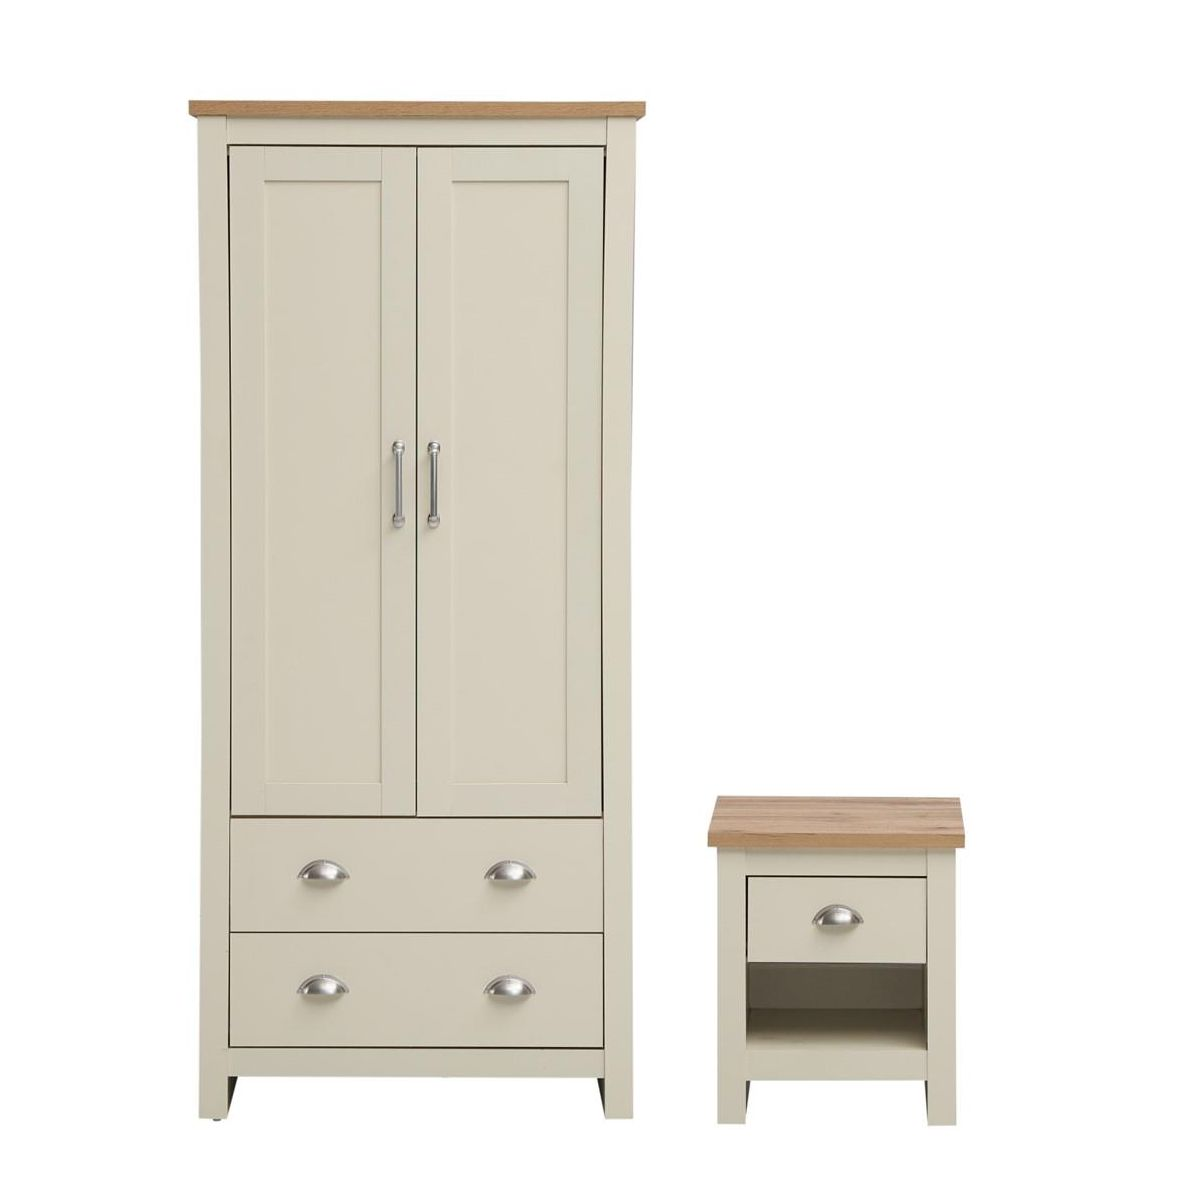 2 PIECE BEDROOM SET (2 DOOR WARDROBE, 1 DRAWER BEDSIDE)